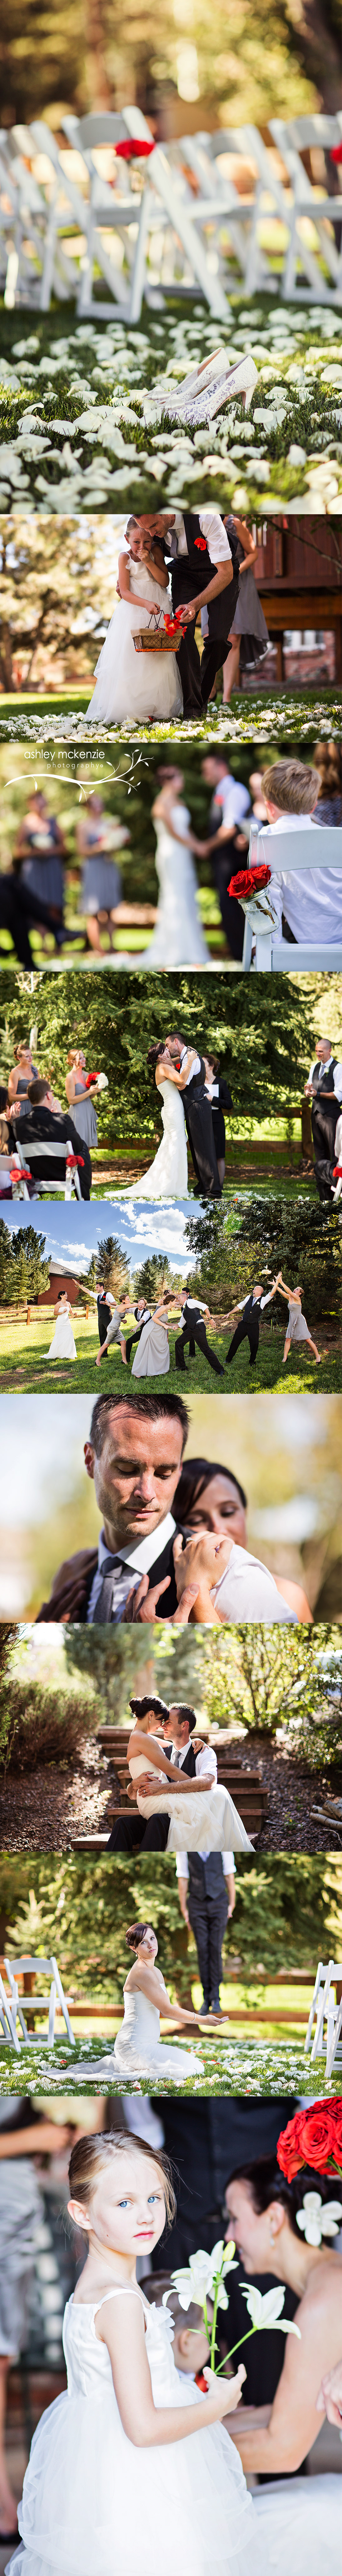 Wedding Photography in Ken Caryl Colorado by Ashley McKenzie Photography